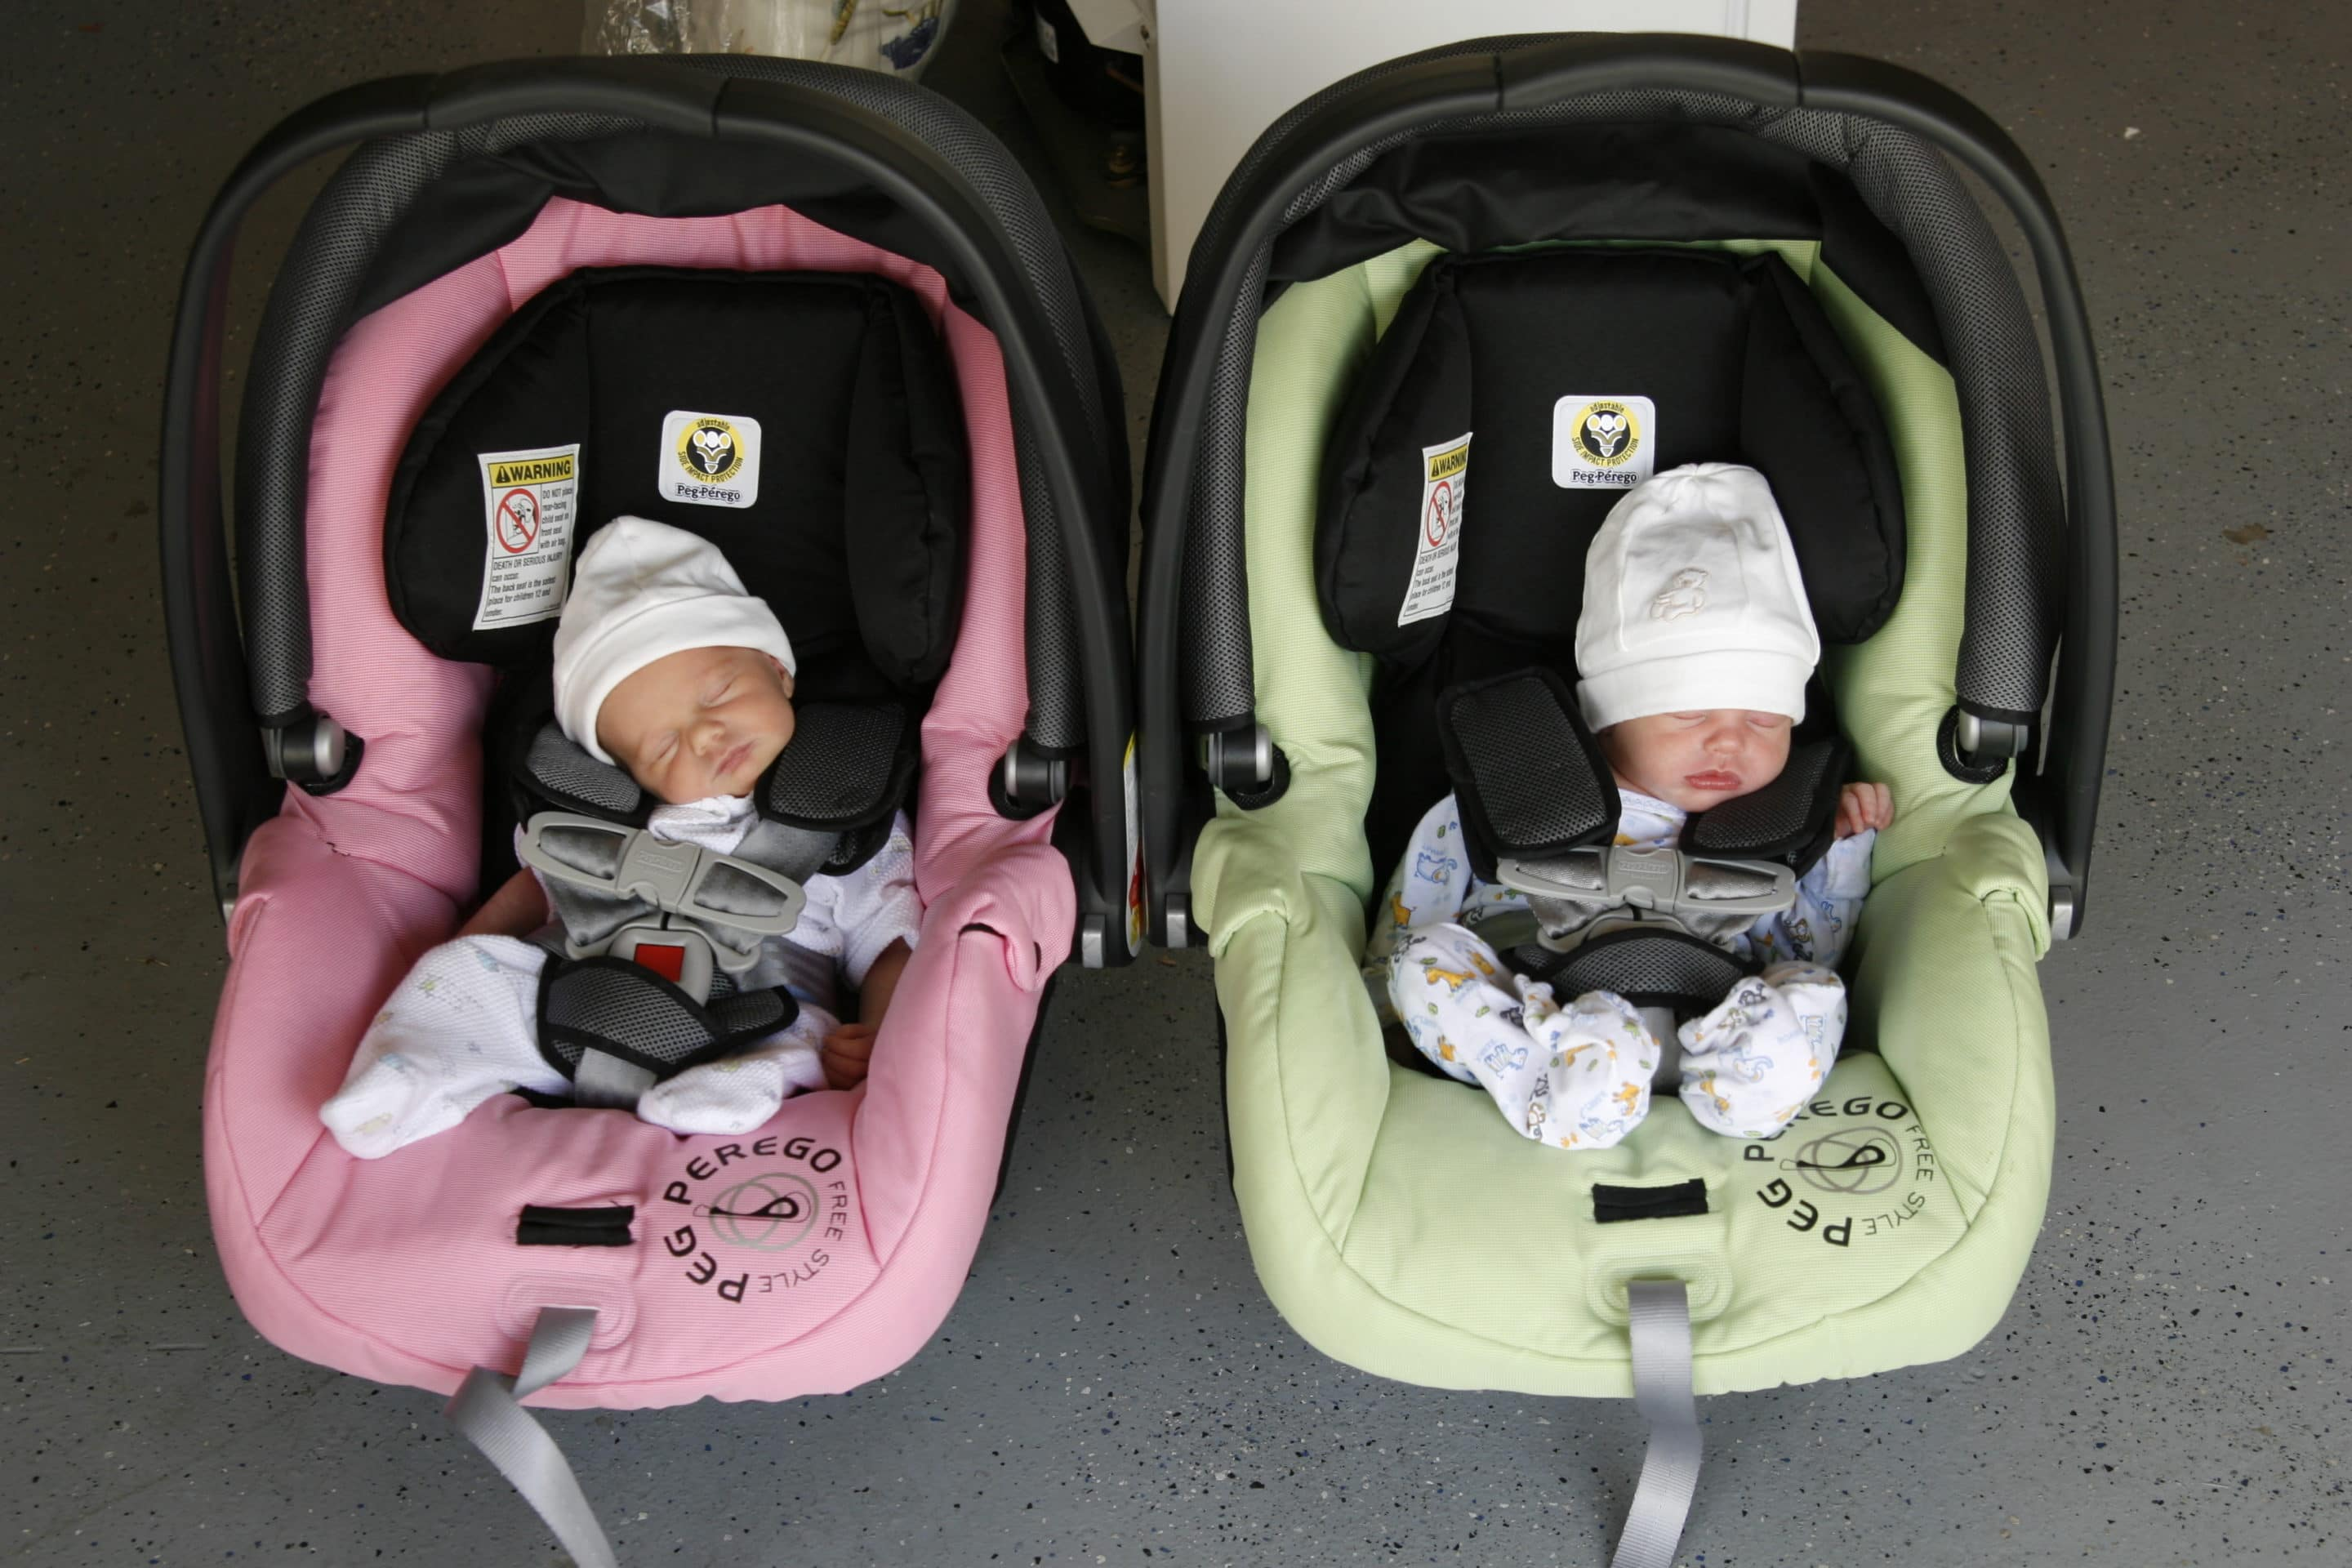 Driving with Low-Weight or Premature Babies is Risky - Online First Aid